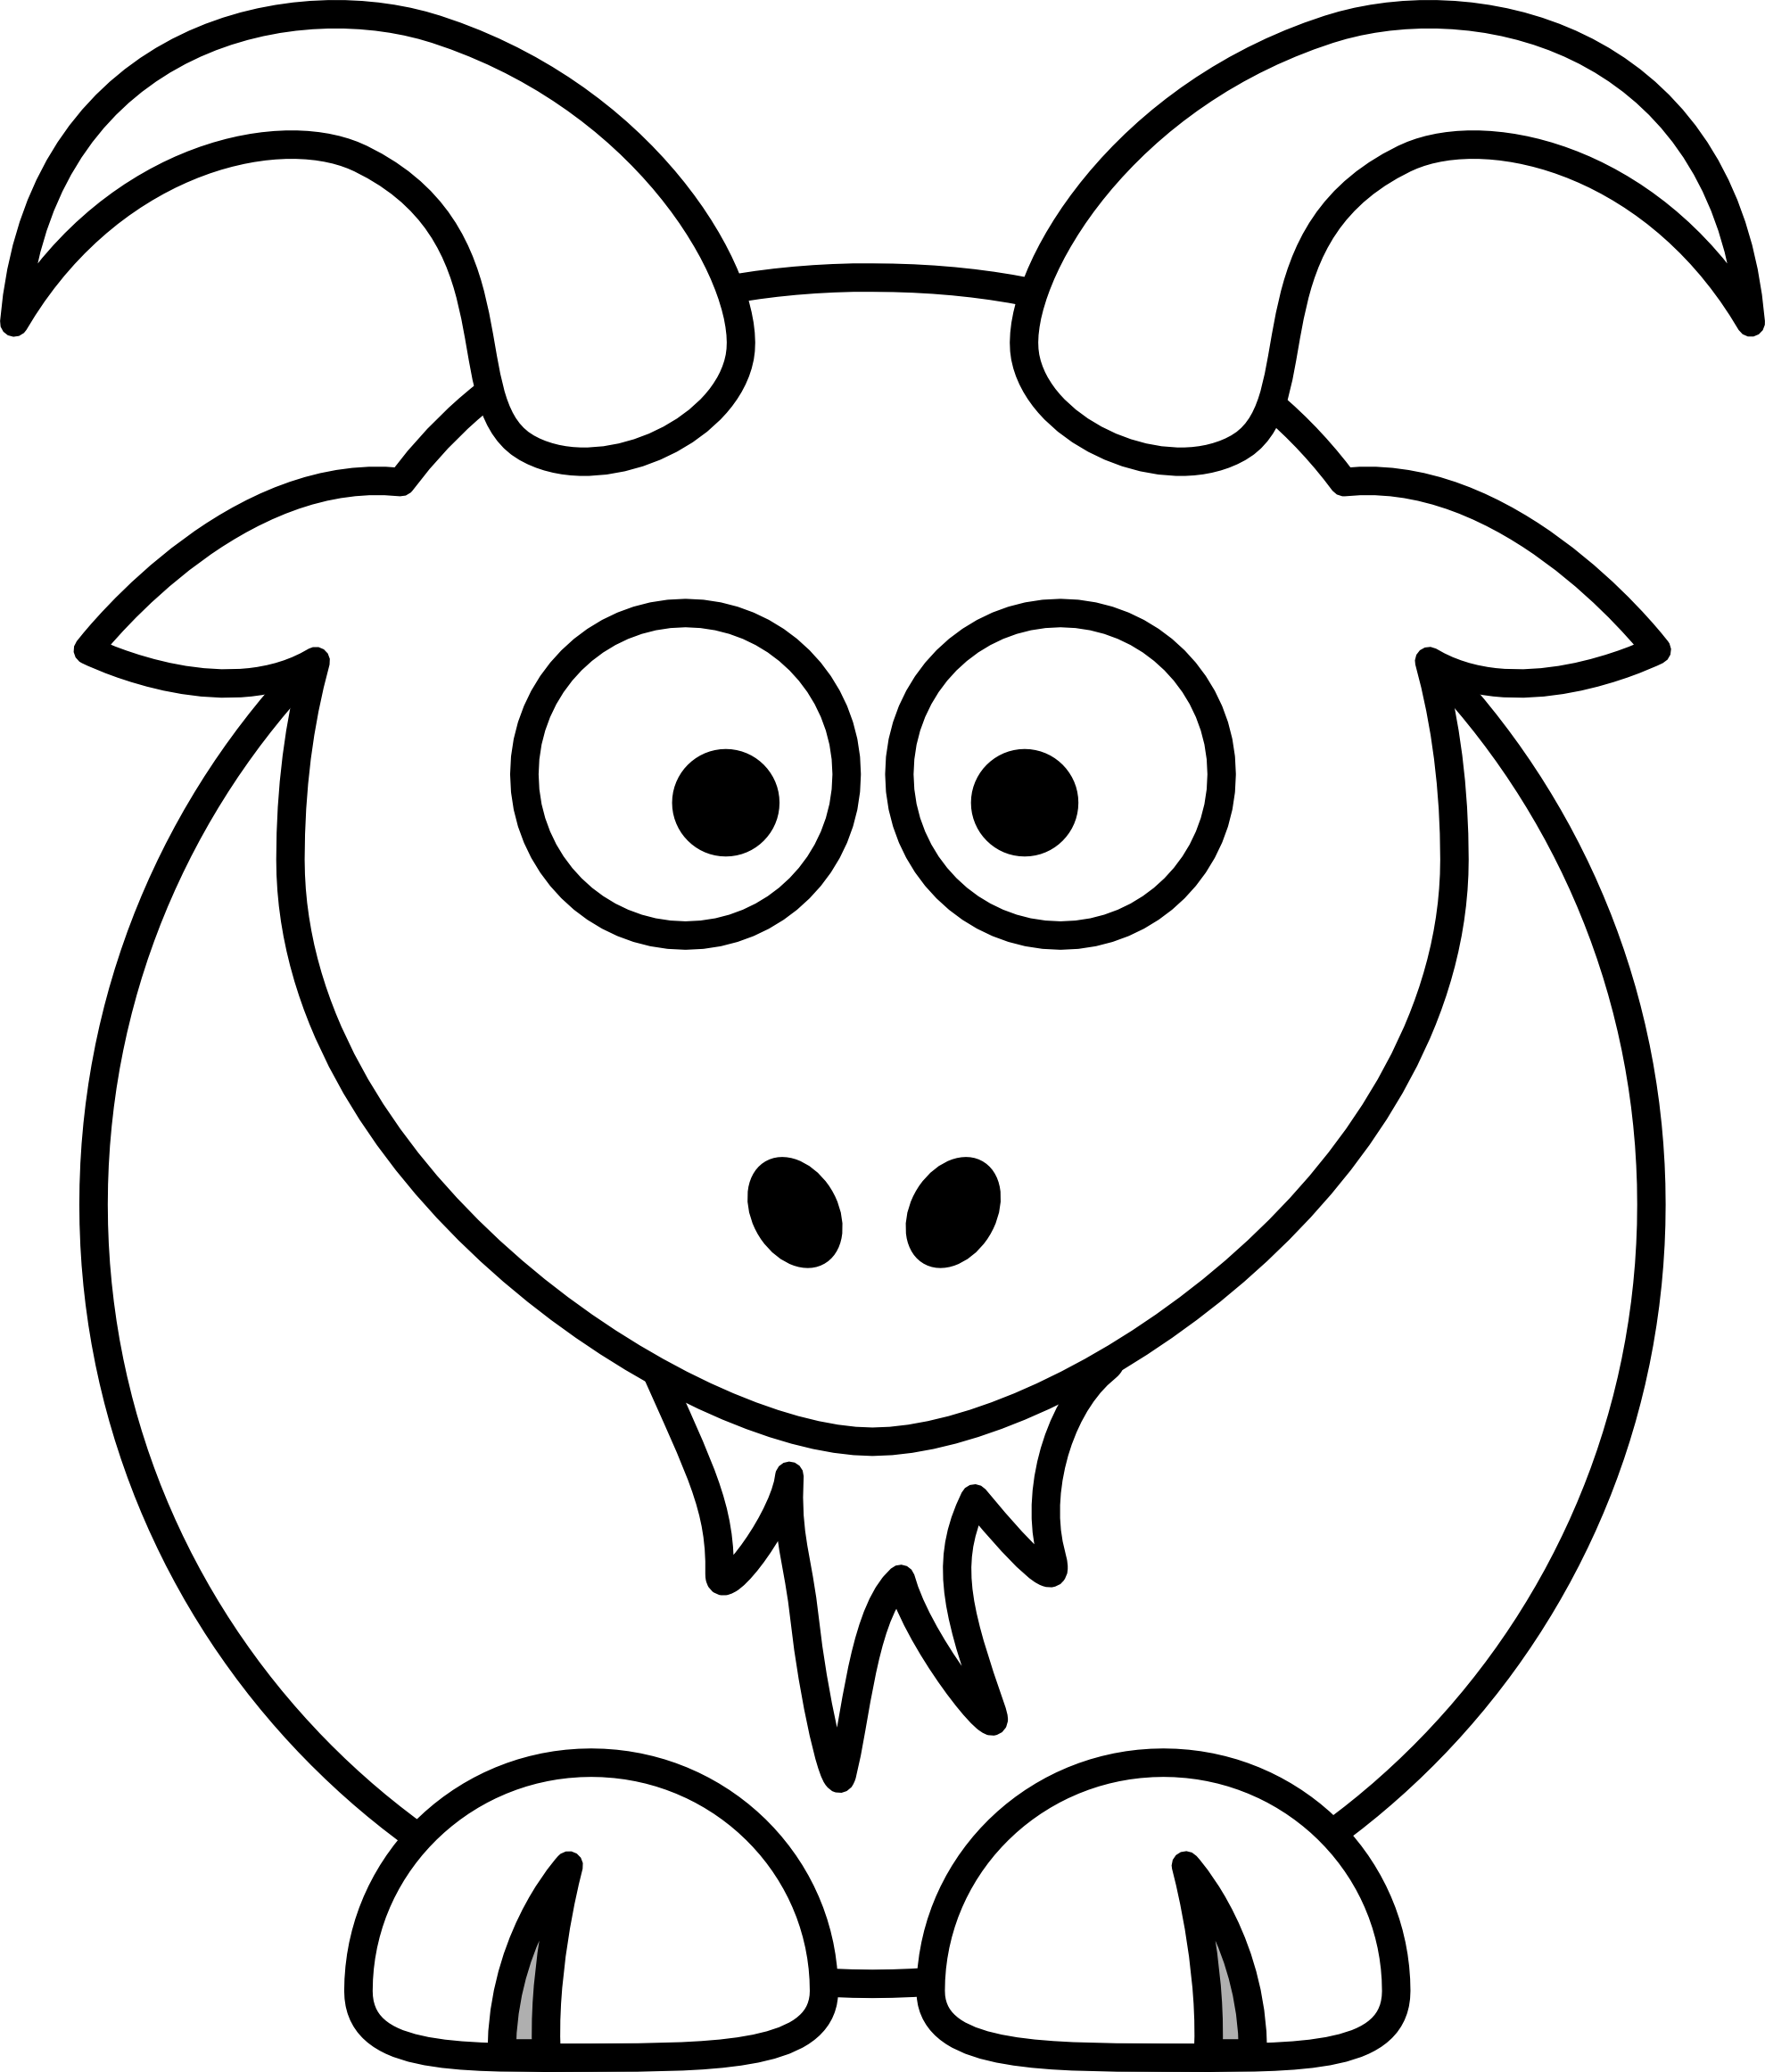 Goat clipart black and white clipart panda free clipart images - Black and wait ...